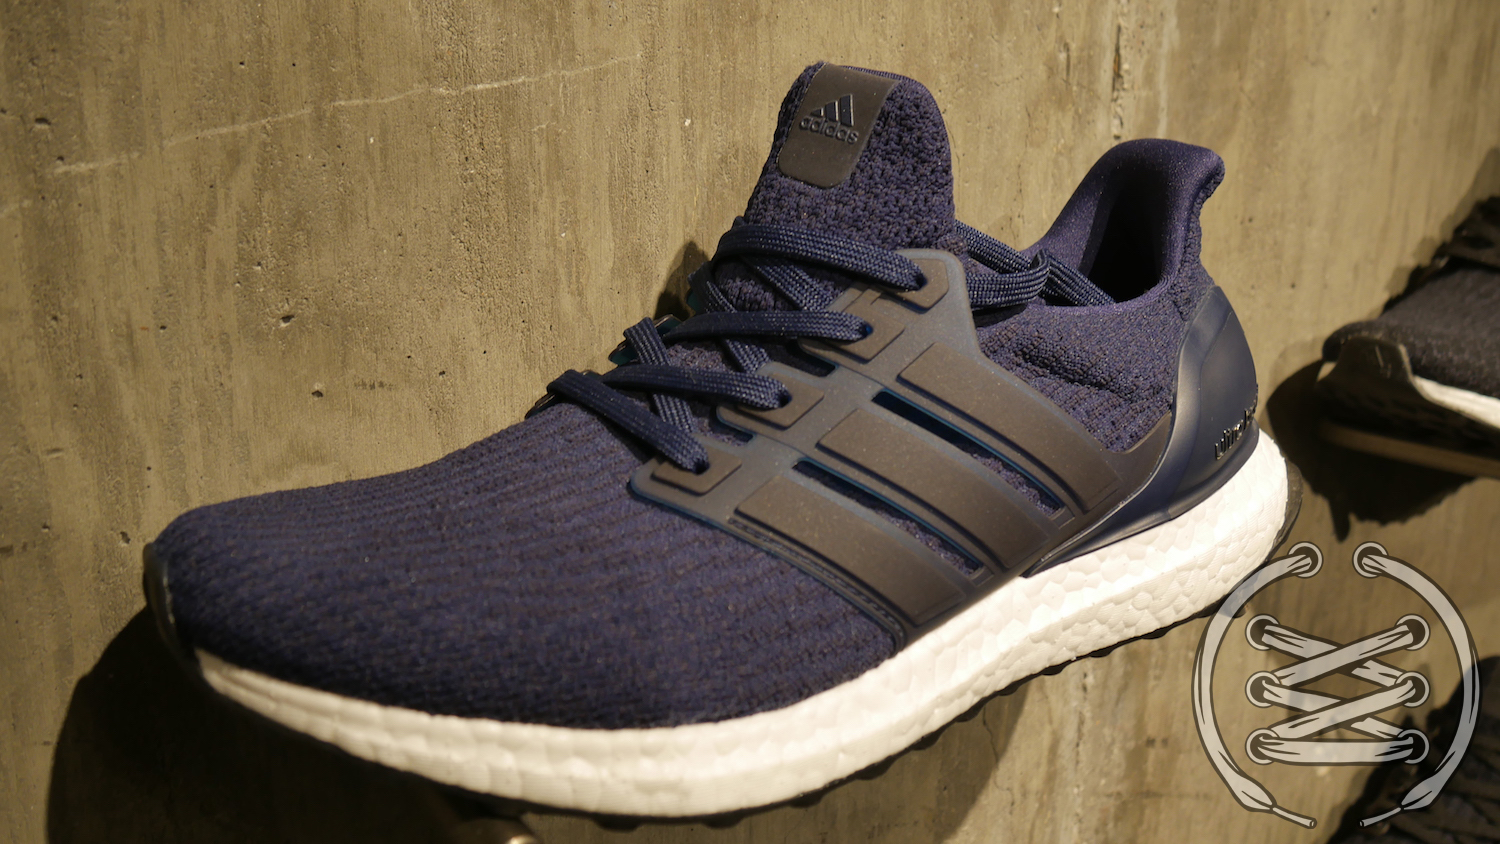 f6c7b0fcd05 adidas nyc ultraboost 3.0 navy - WearTesters